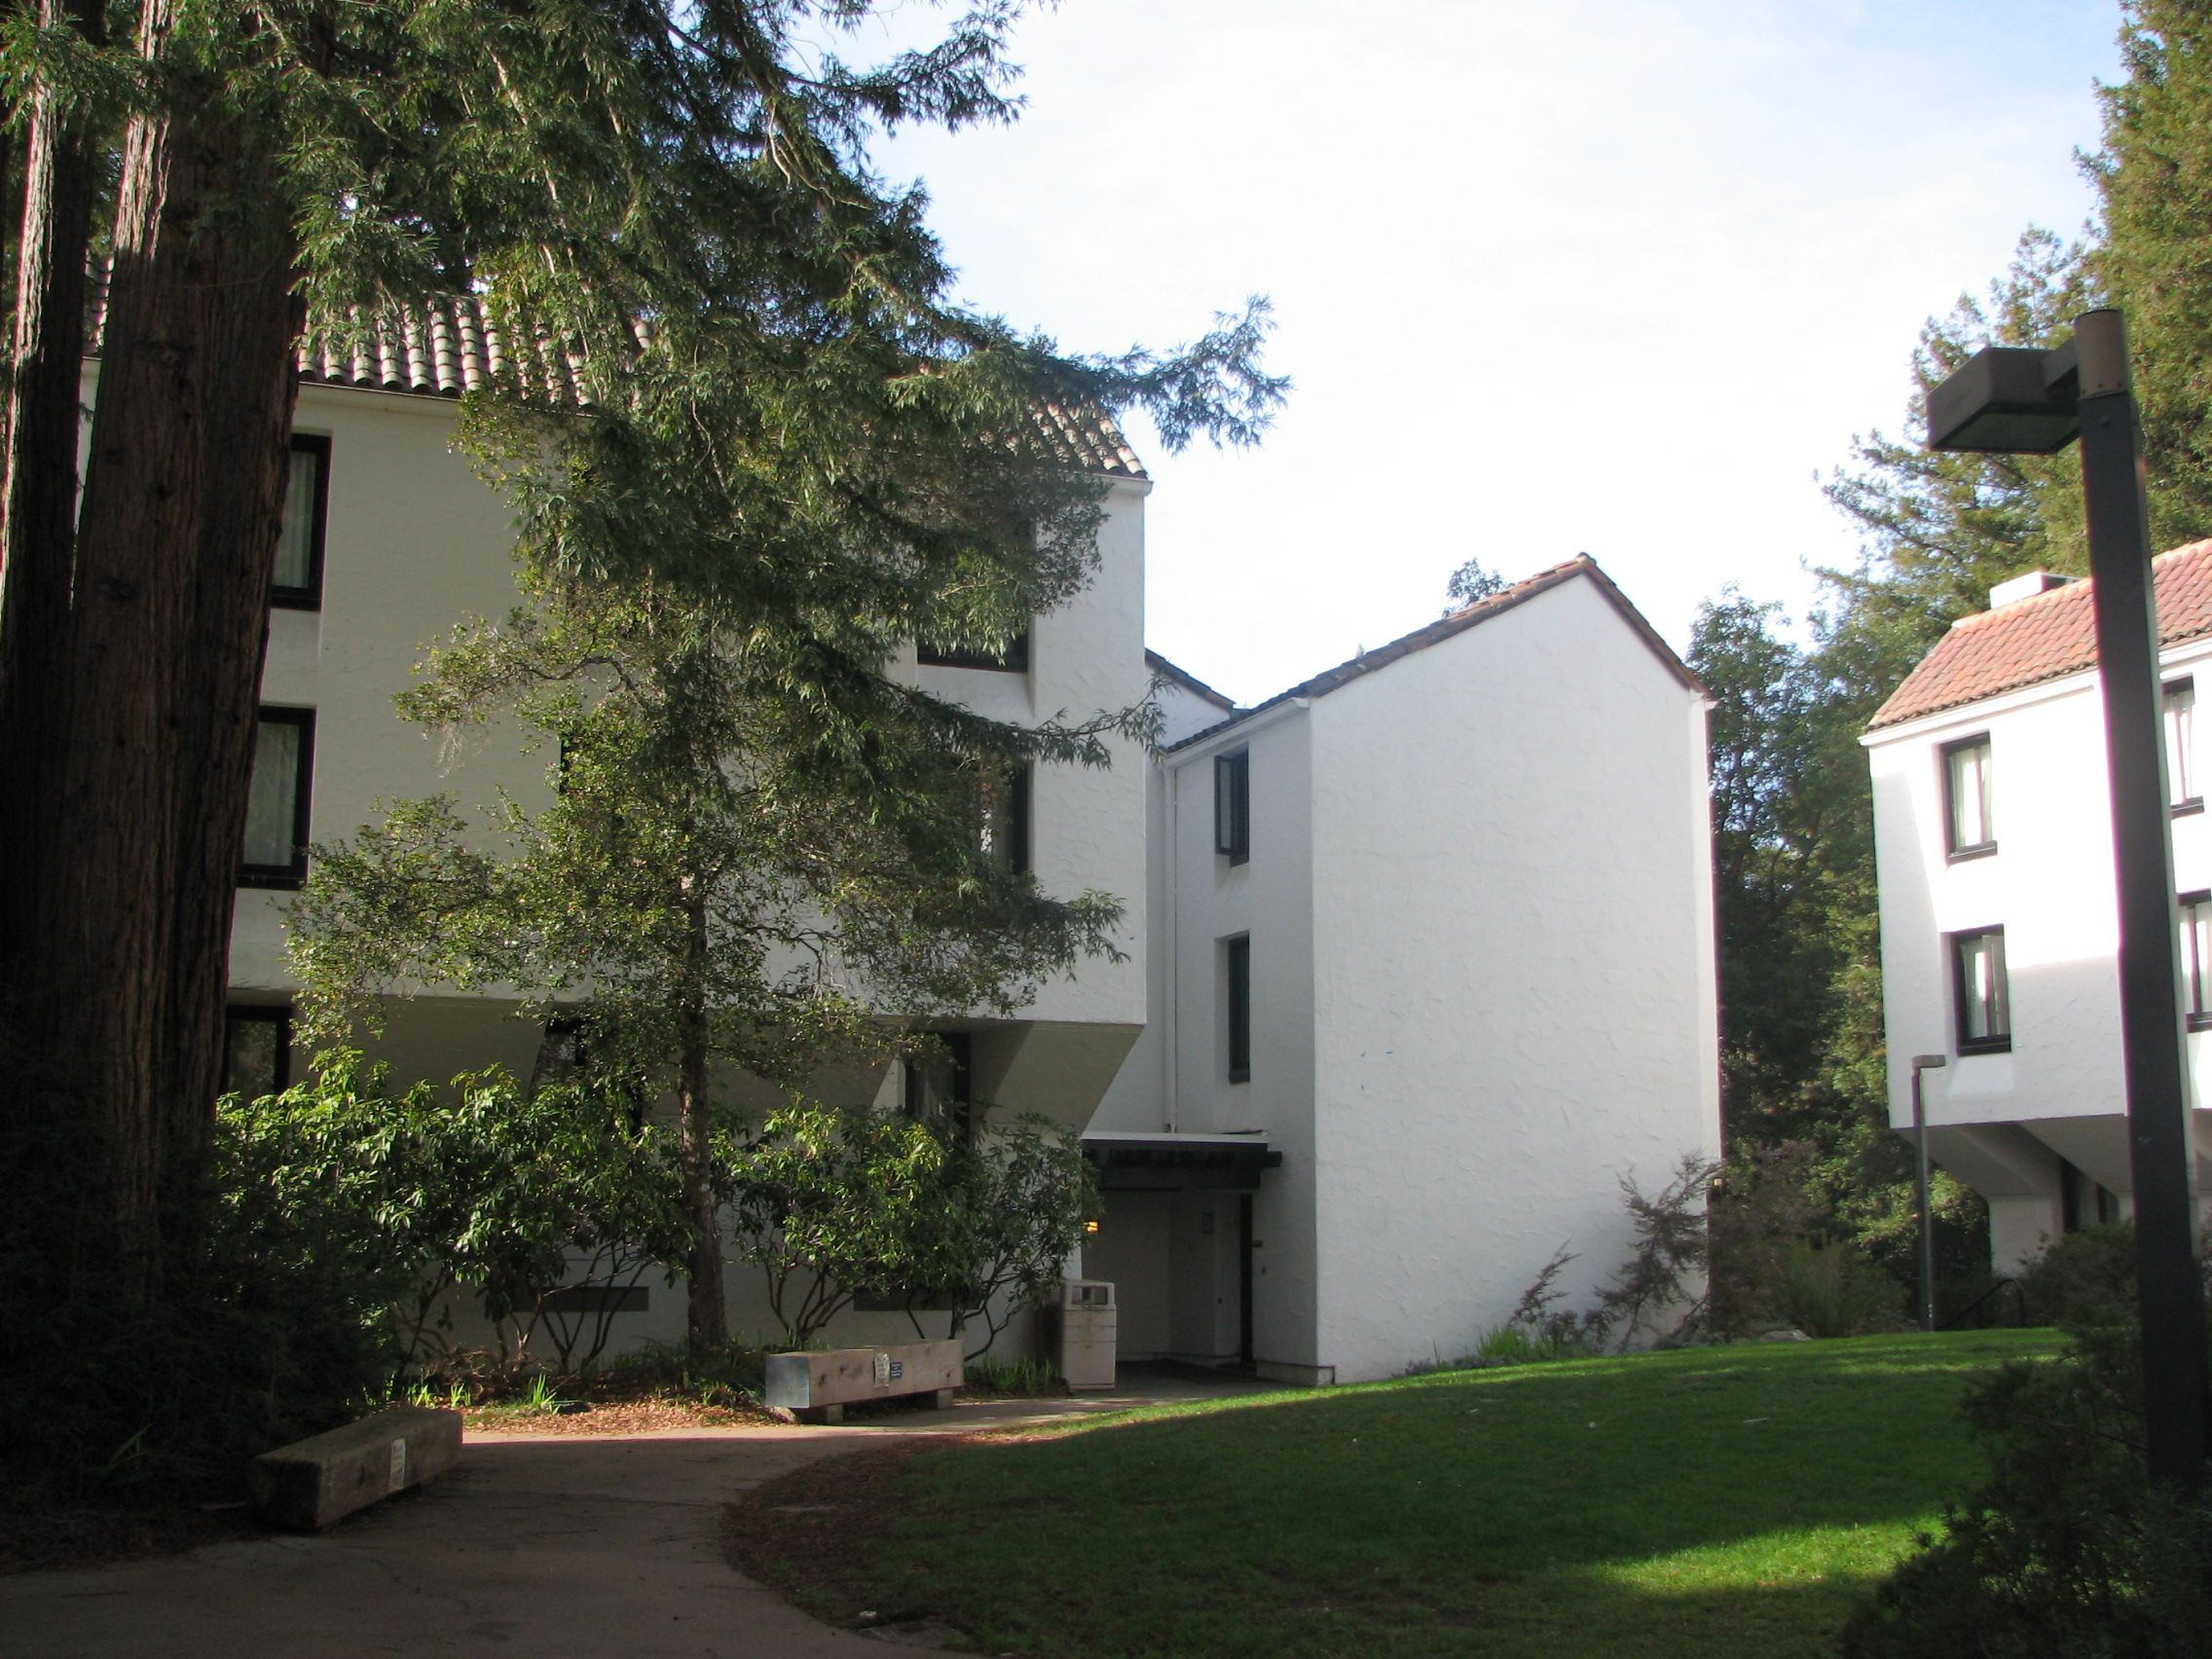 Crown College Is The Third Overall To Be Elished At Uc Santa Cruz Behind Stevenson And Before Merrill Ucsc